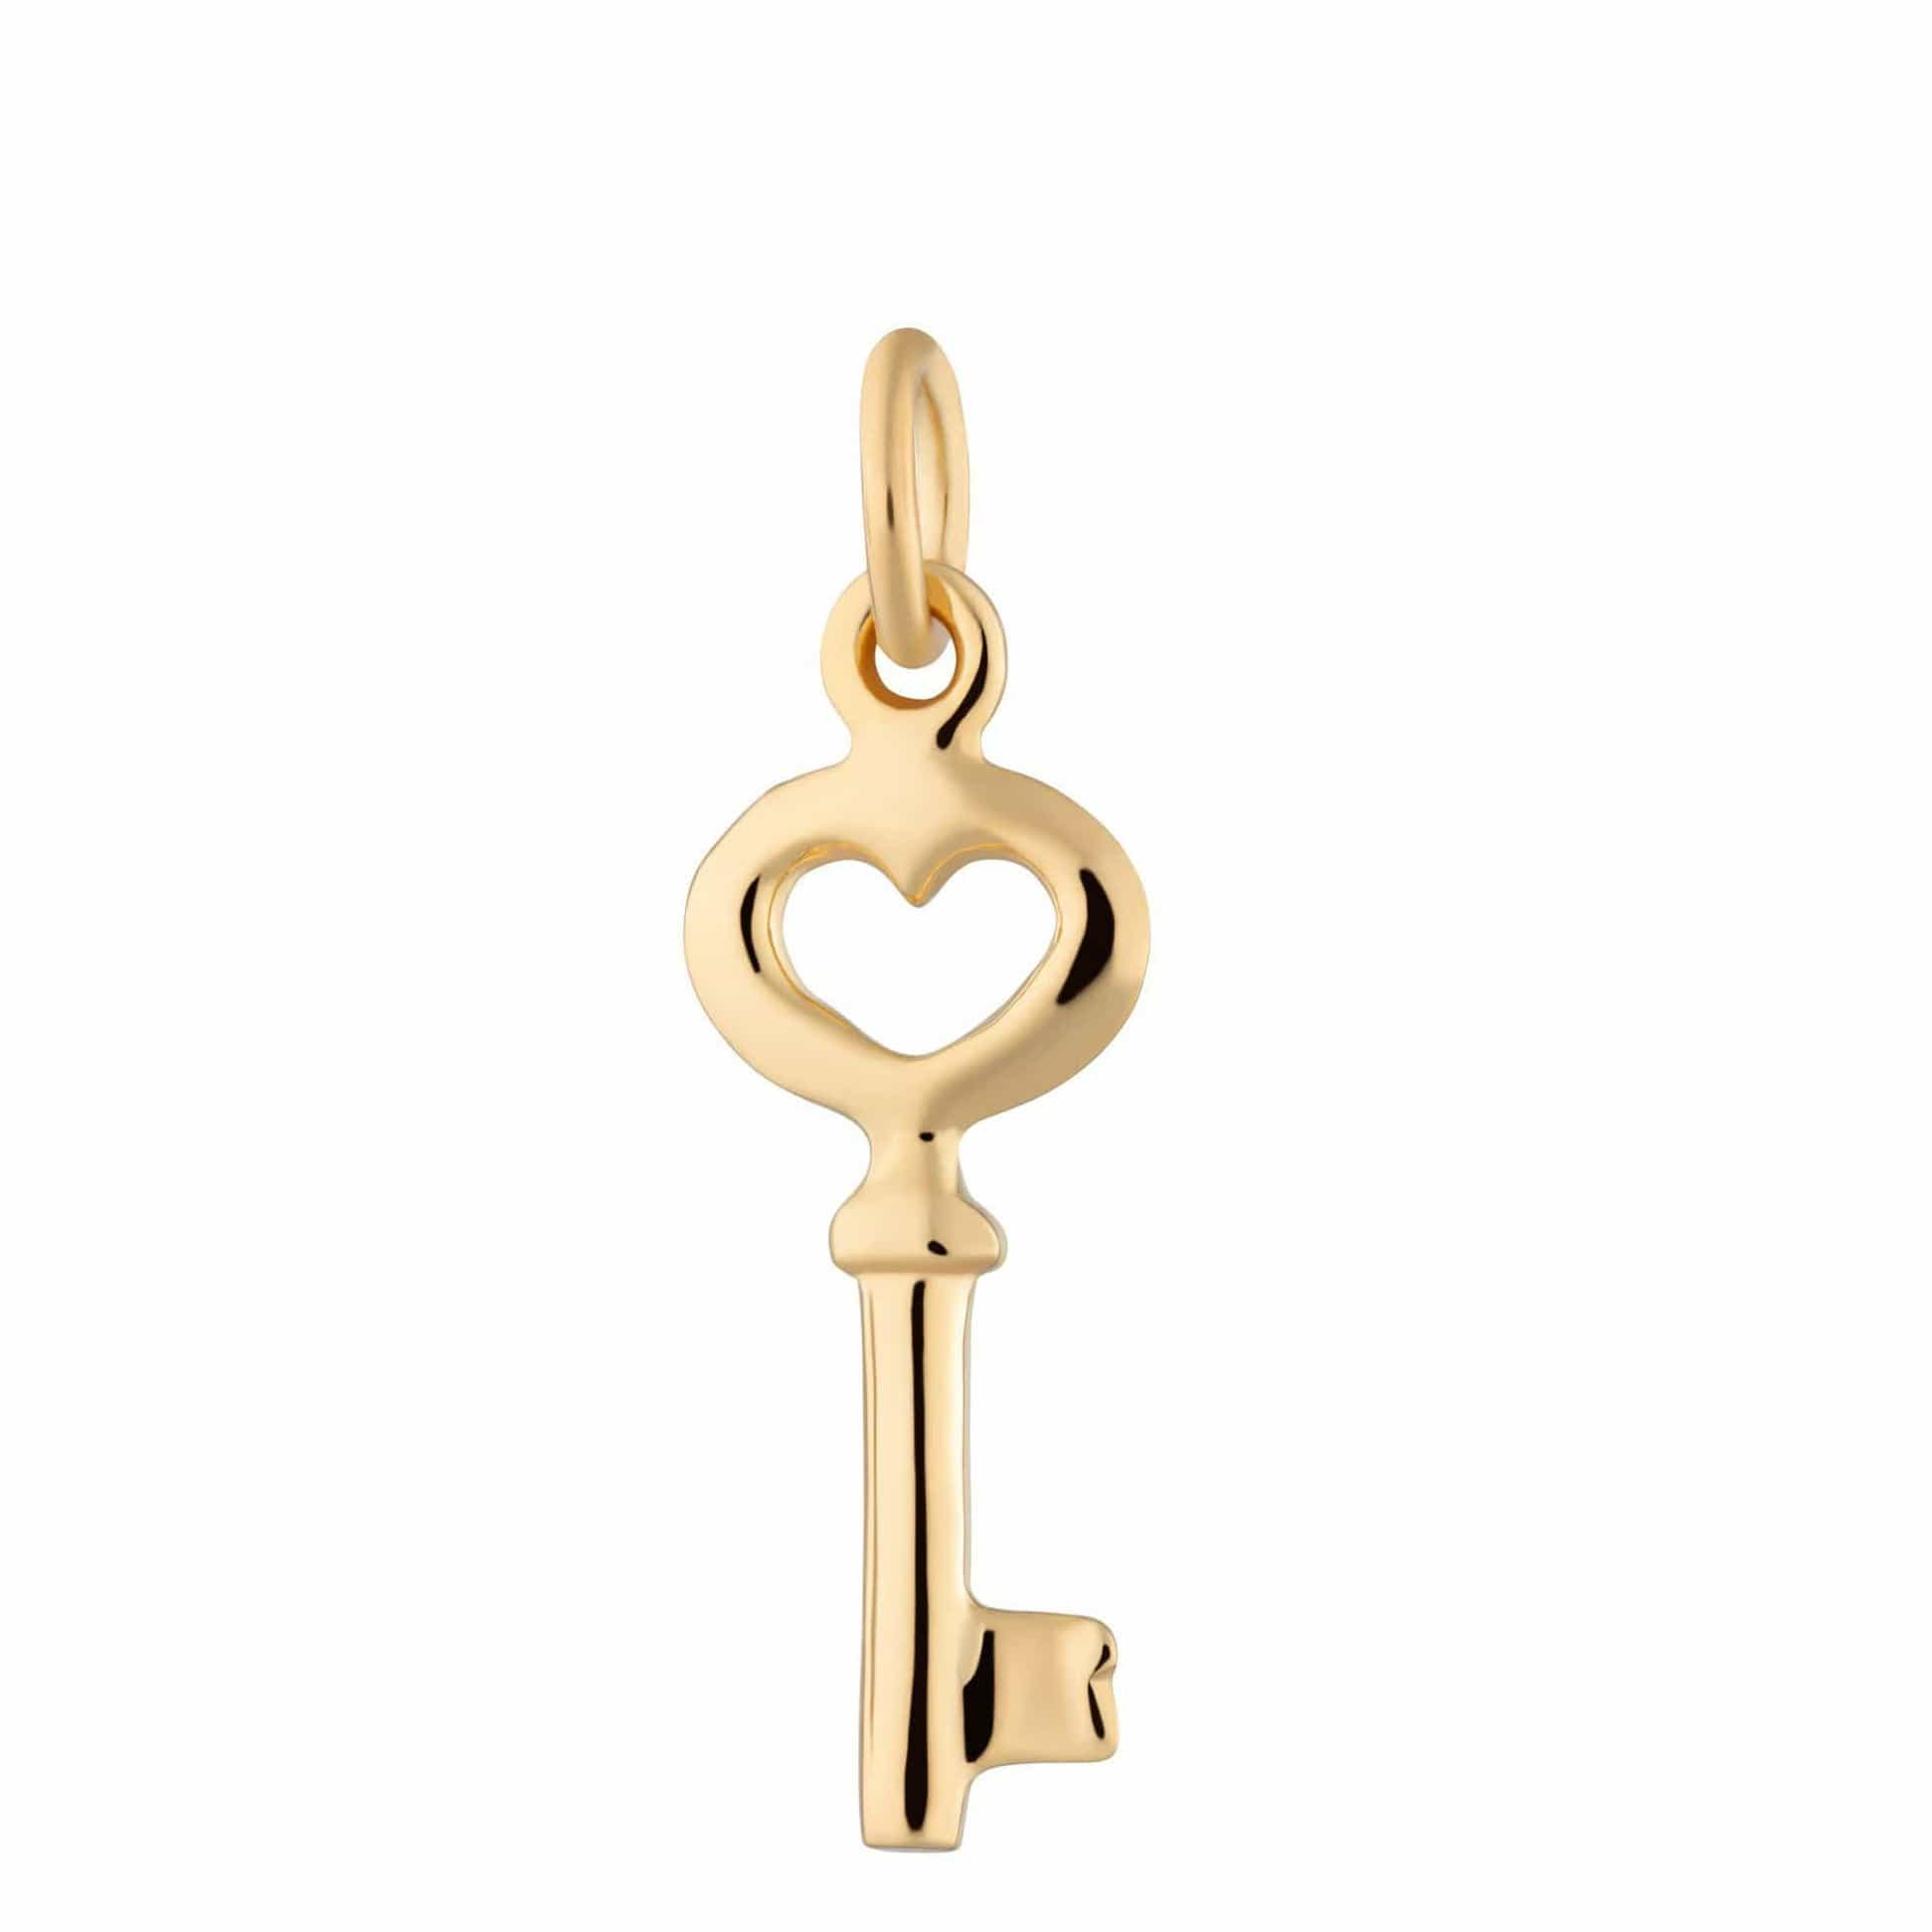 Gold Plated Key Charm - Lily Charmed